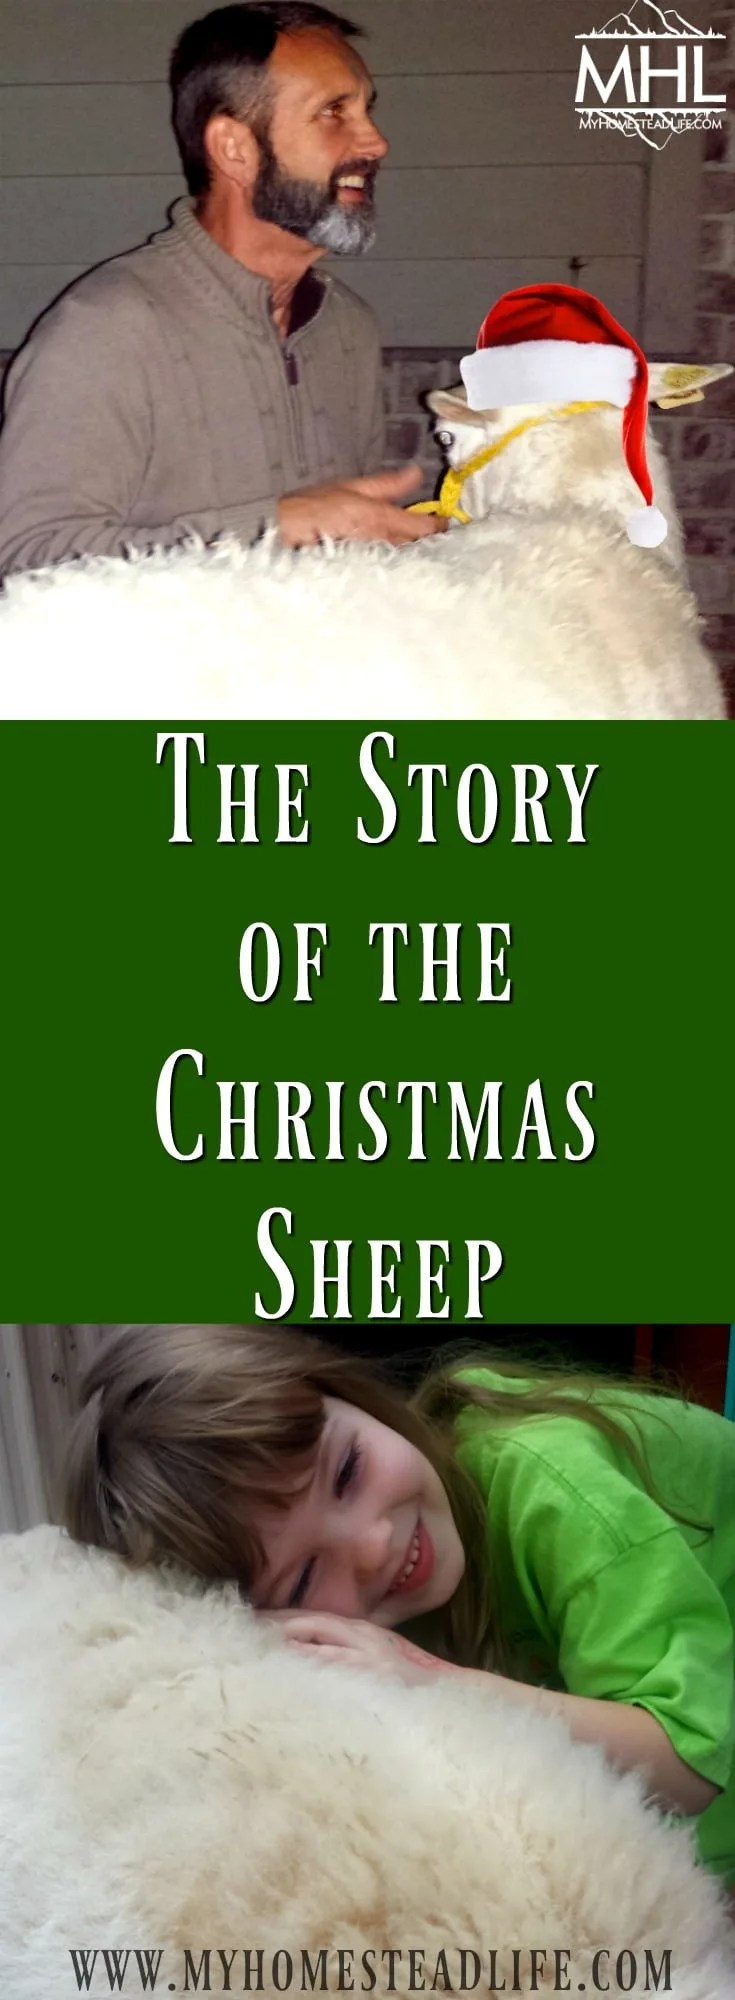 The Story Of The Christmas Sheep